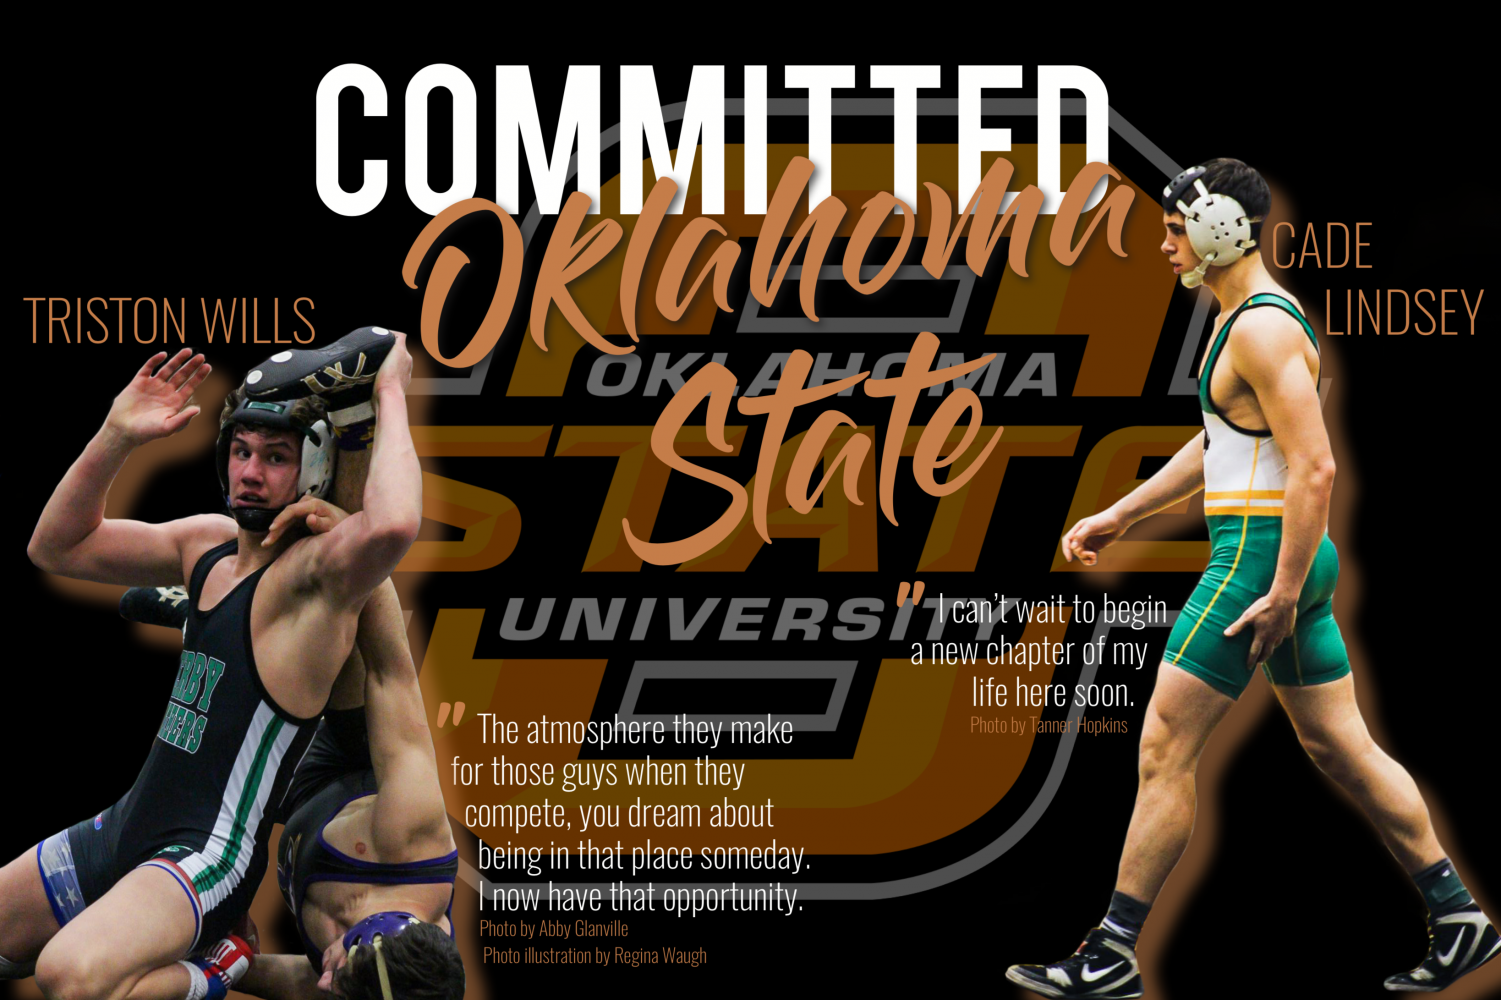 Senior wrestlers Triston Wills and Cade Lindsey have both committed to Oklahoma State University.